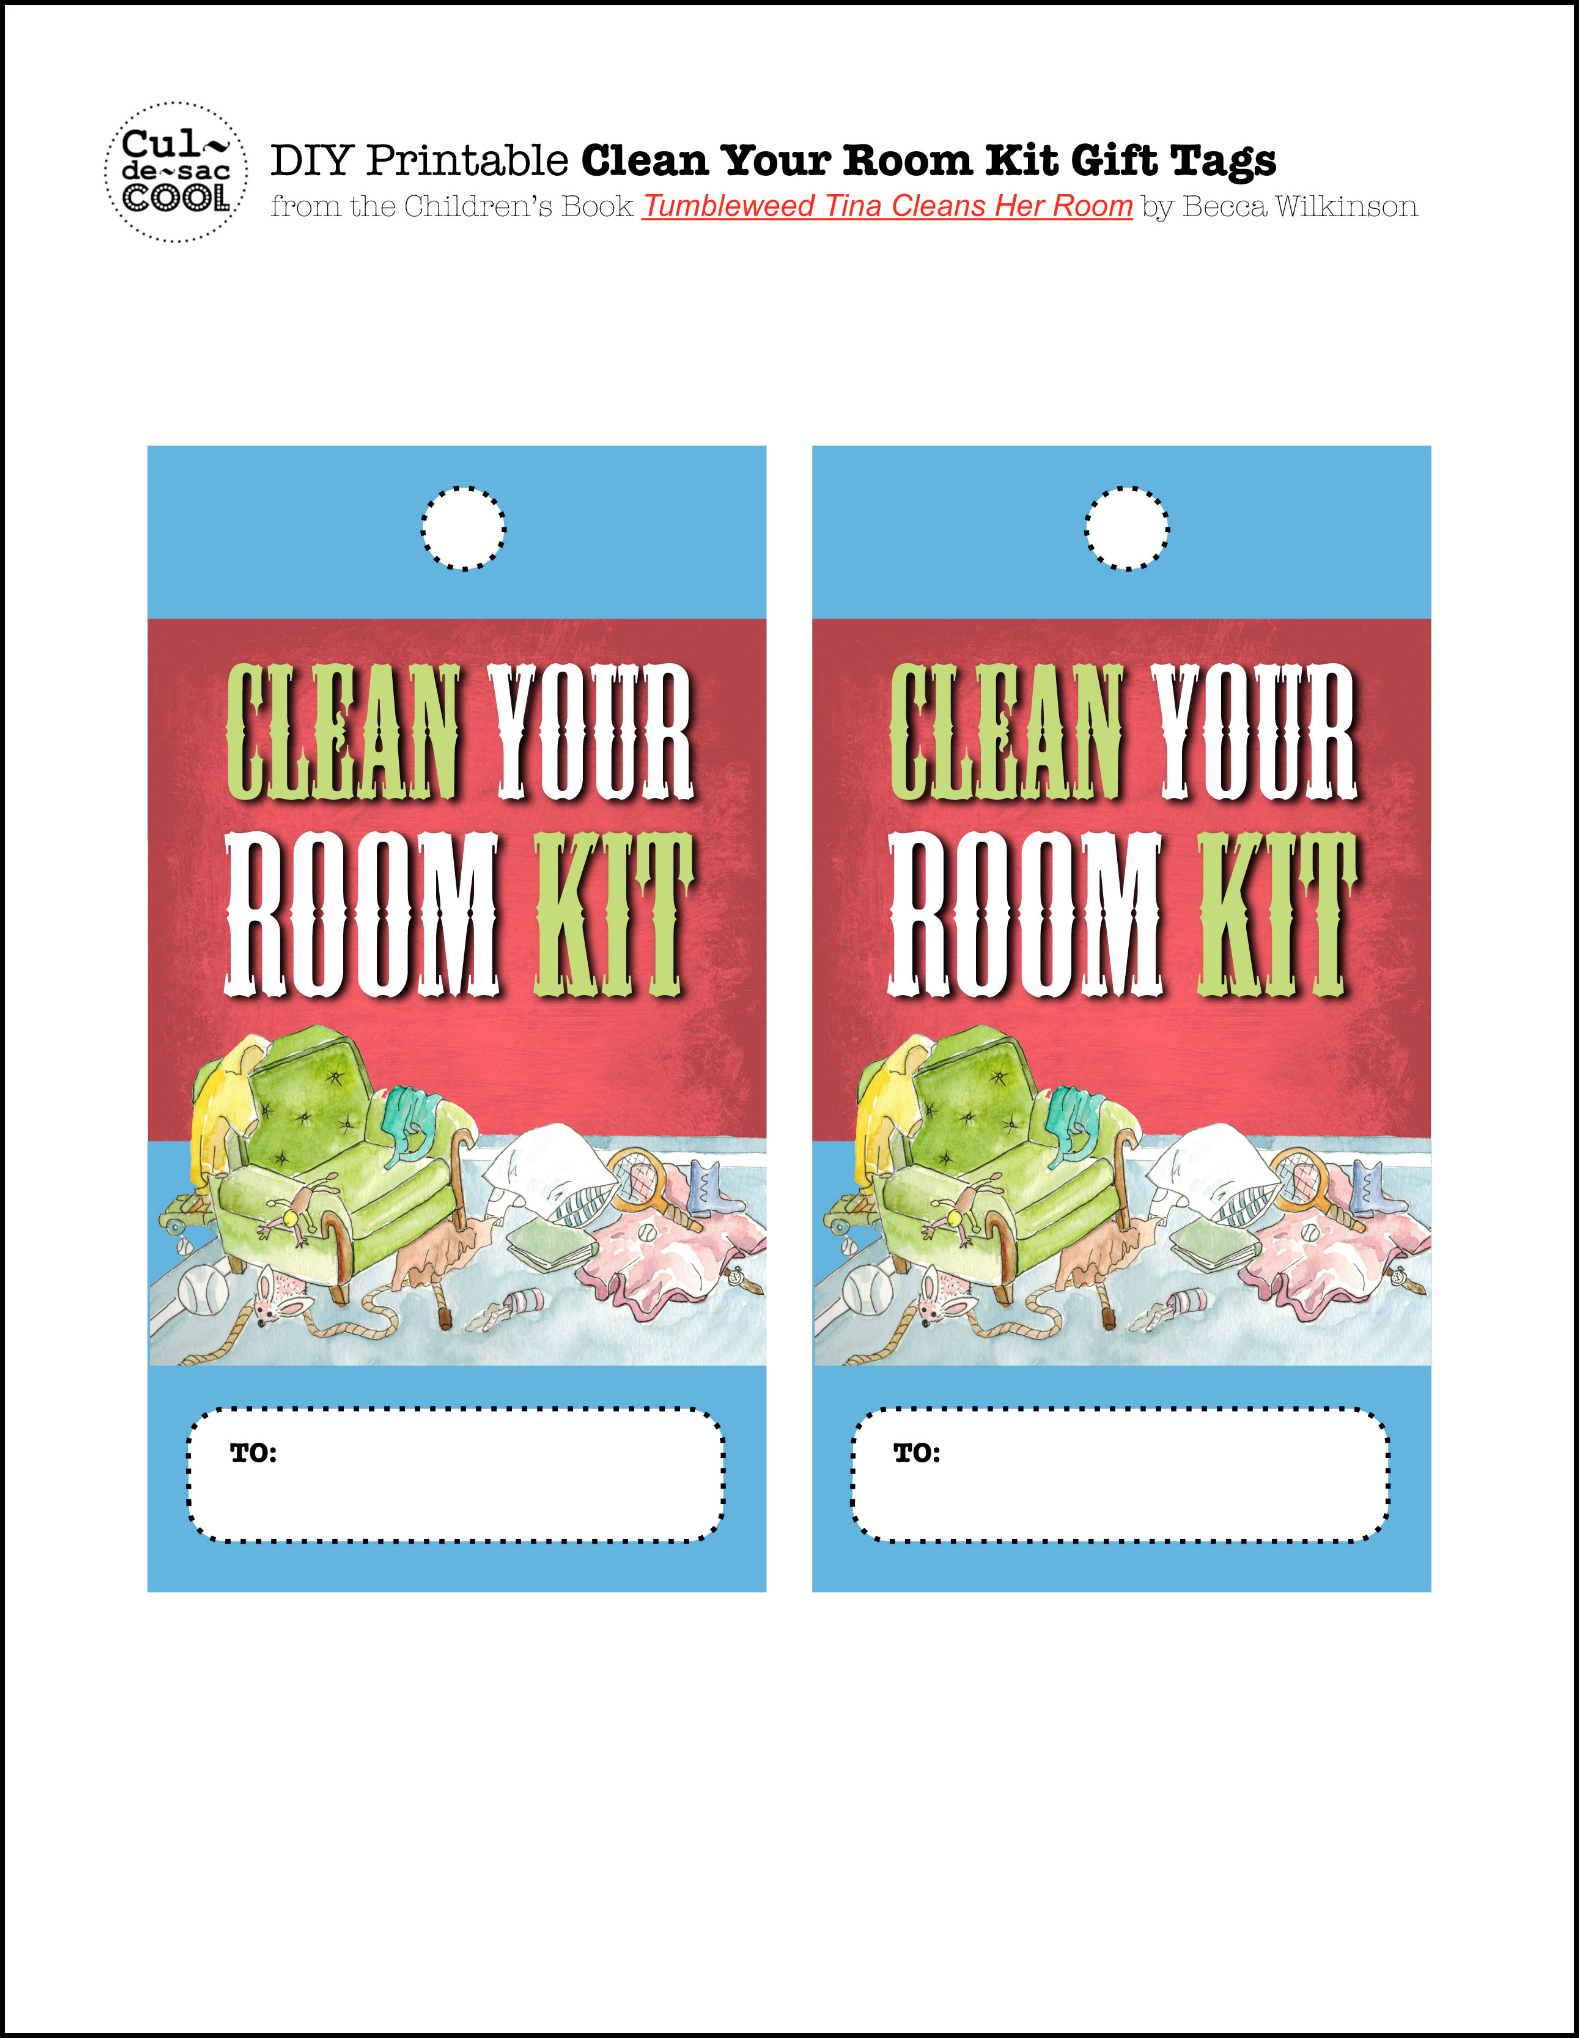 DIY Printable Clean Your Room Kit Tags from the children's Book Tumbleweed Tina Cleans Her Room by Becca Wilkinson